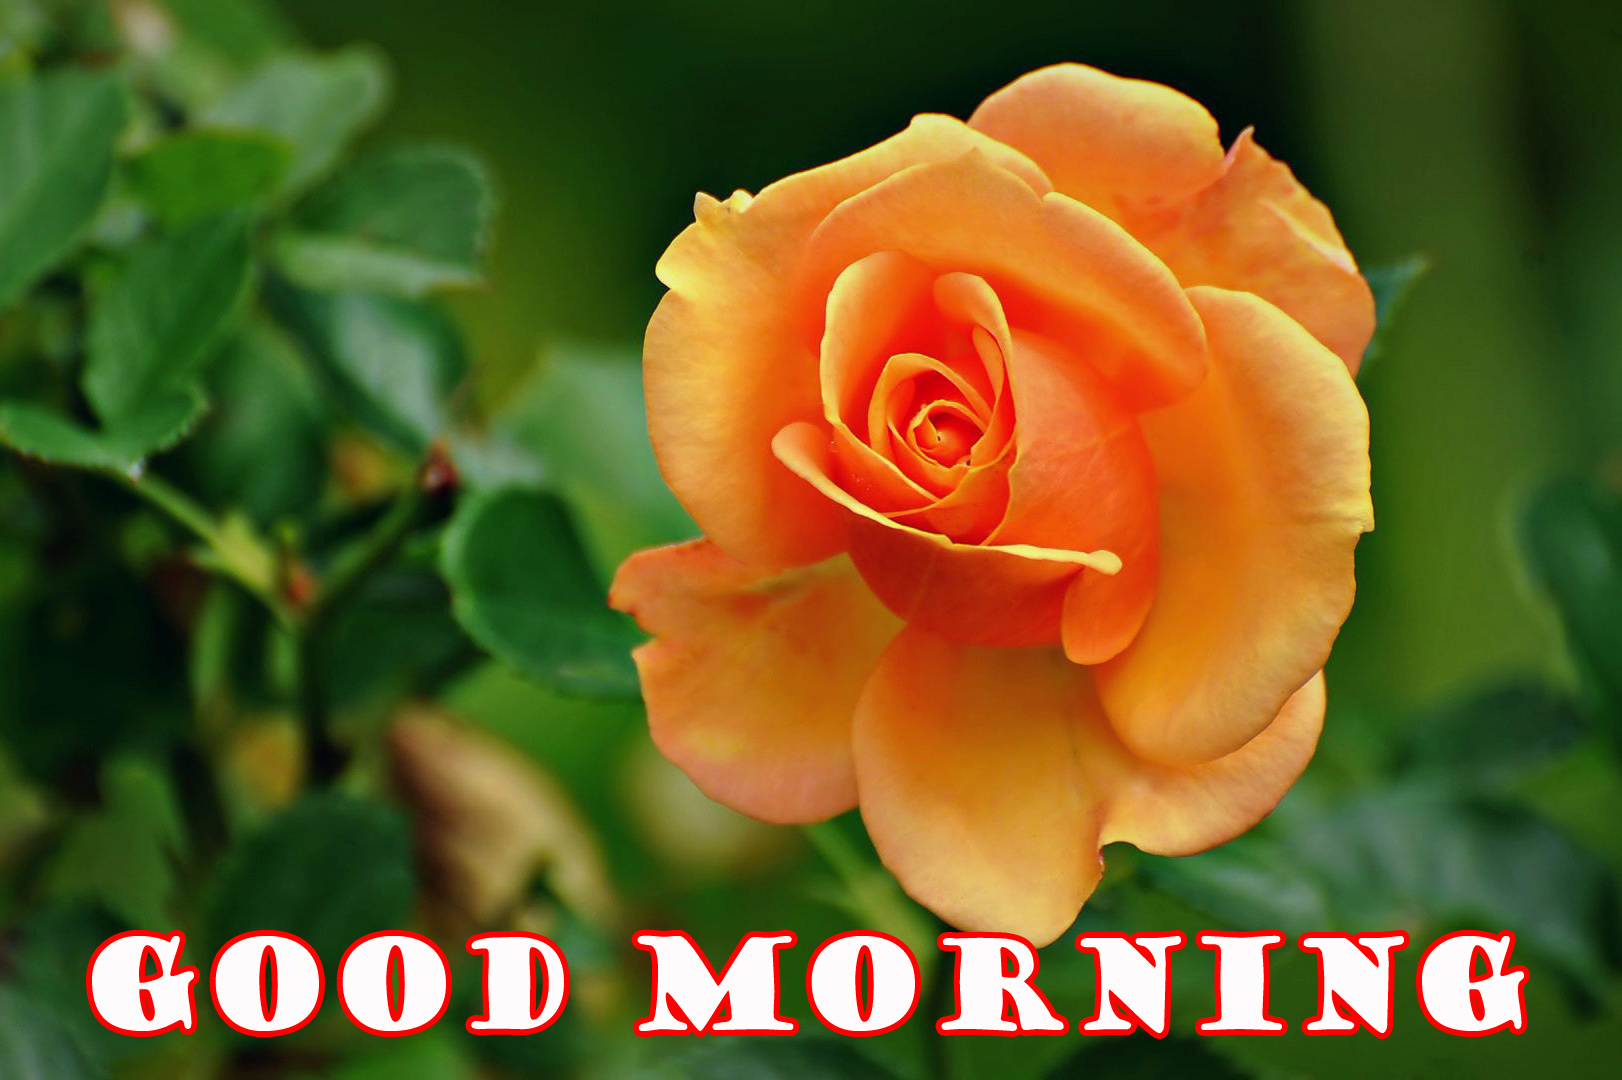 187 1879460 good morning flowers wallpaper pictures images free orange